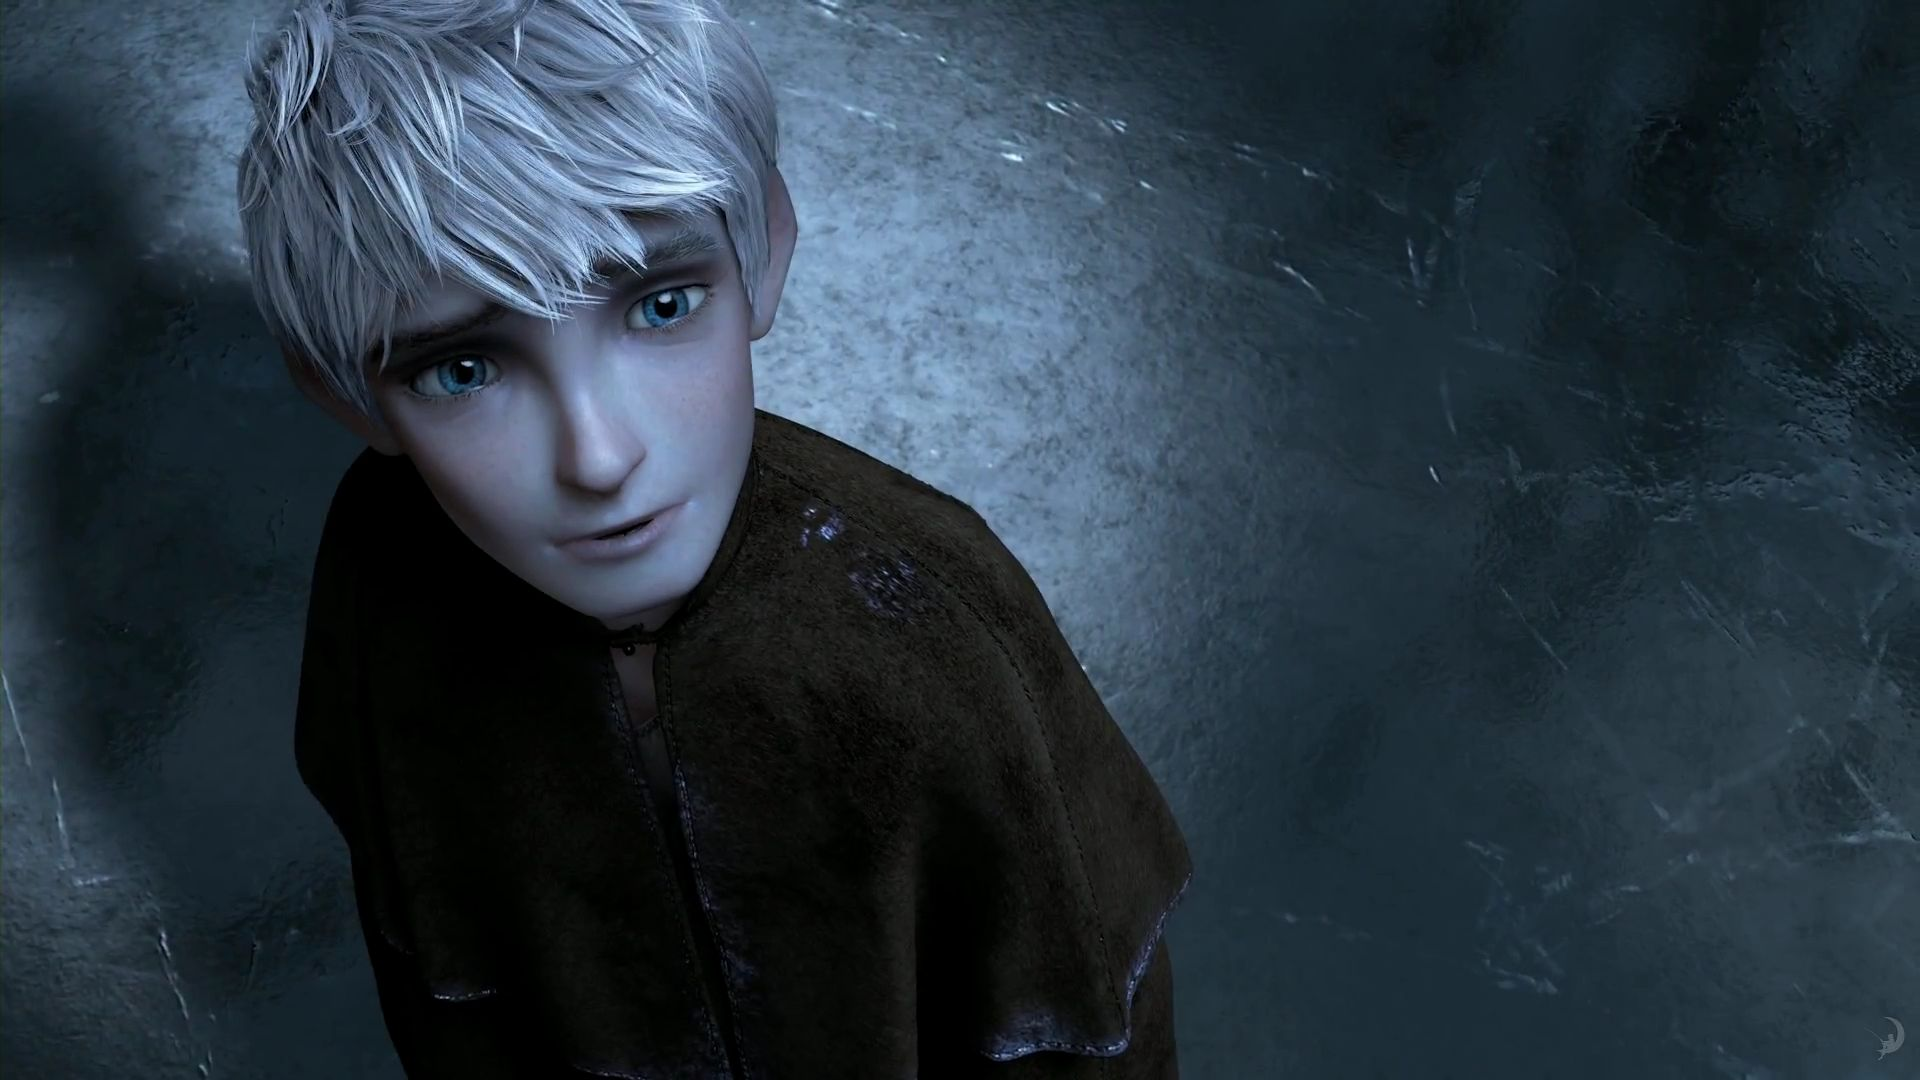 Movie pictures jack frost rise of the guardians wallpapers rise movie pictures jack frost rise of the guardians wallpapers thecheapjerseys Images